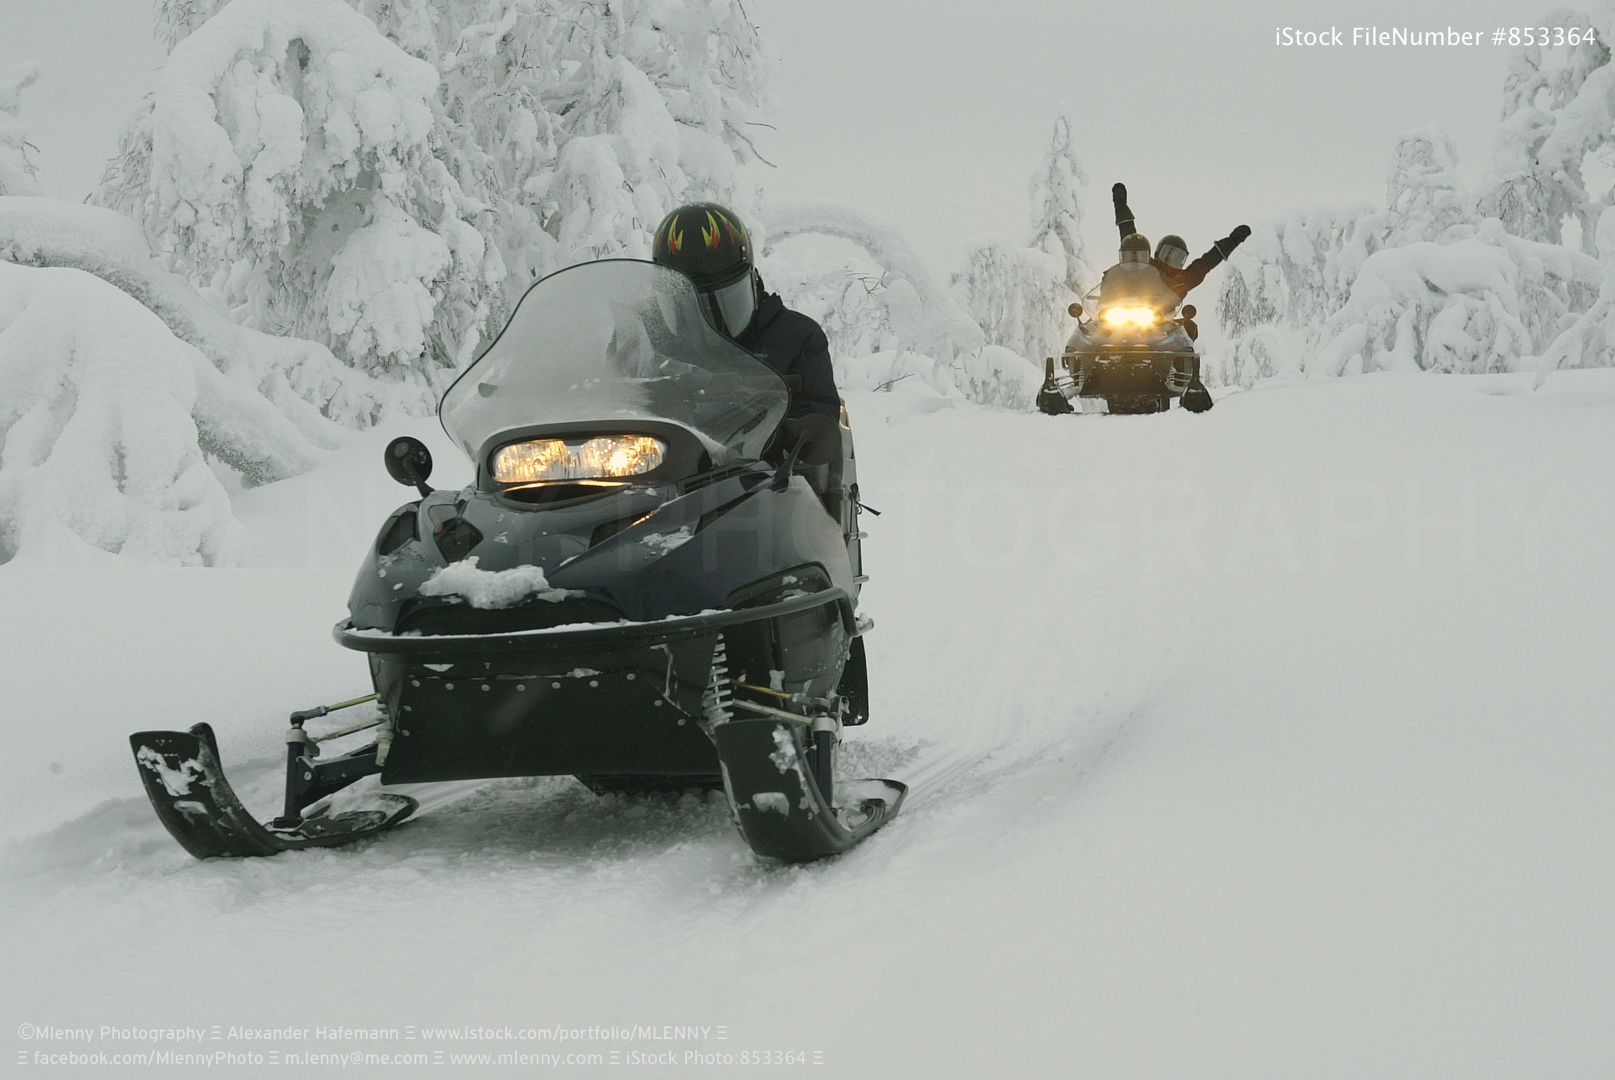 Snow Landscape in Lapland - Finland - Europe. Snowmobile Expedition through the Ice Cold Northern Europe in Winter.